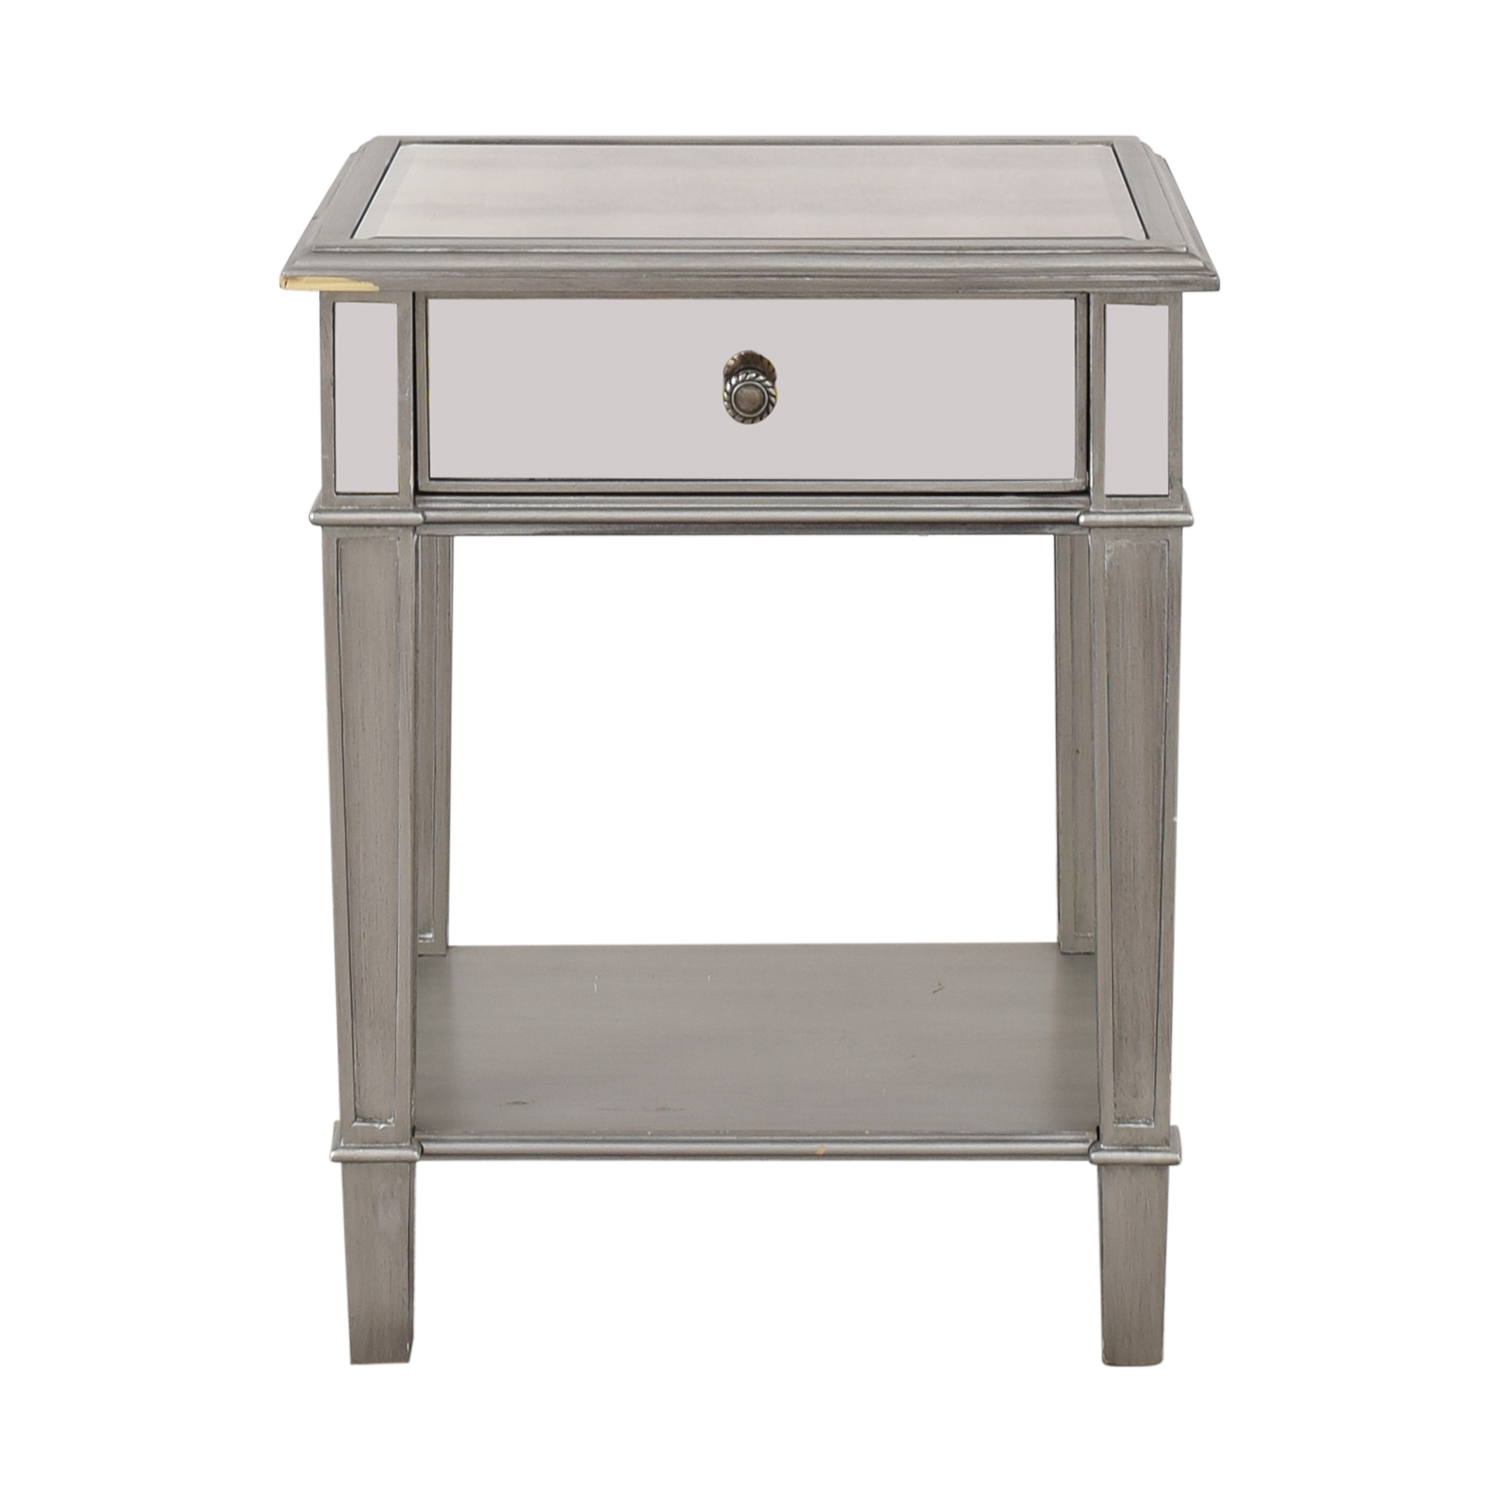 shop Pier 1 Pier 1 Mirrored Nightstand online